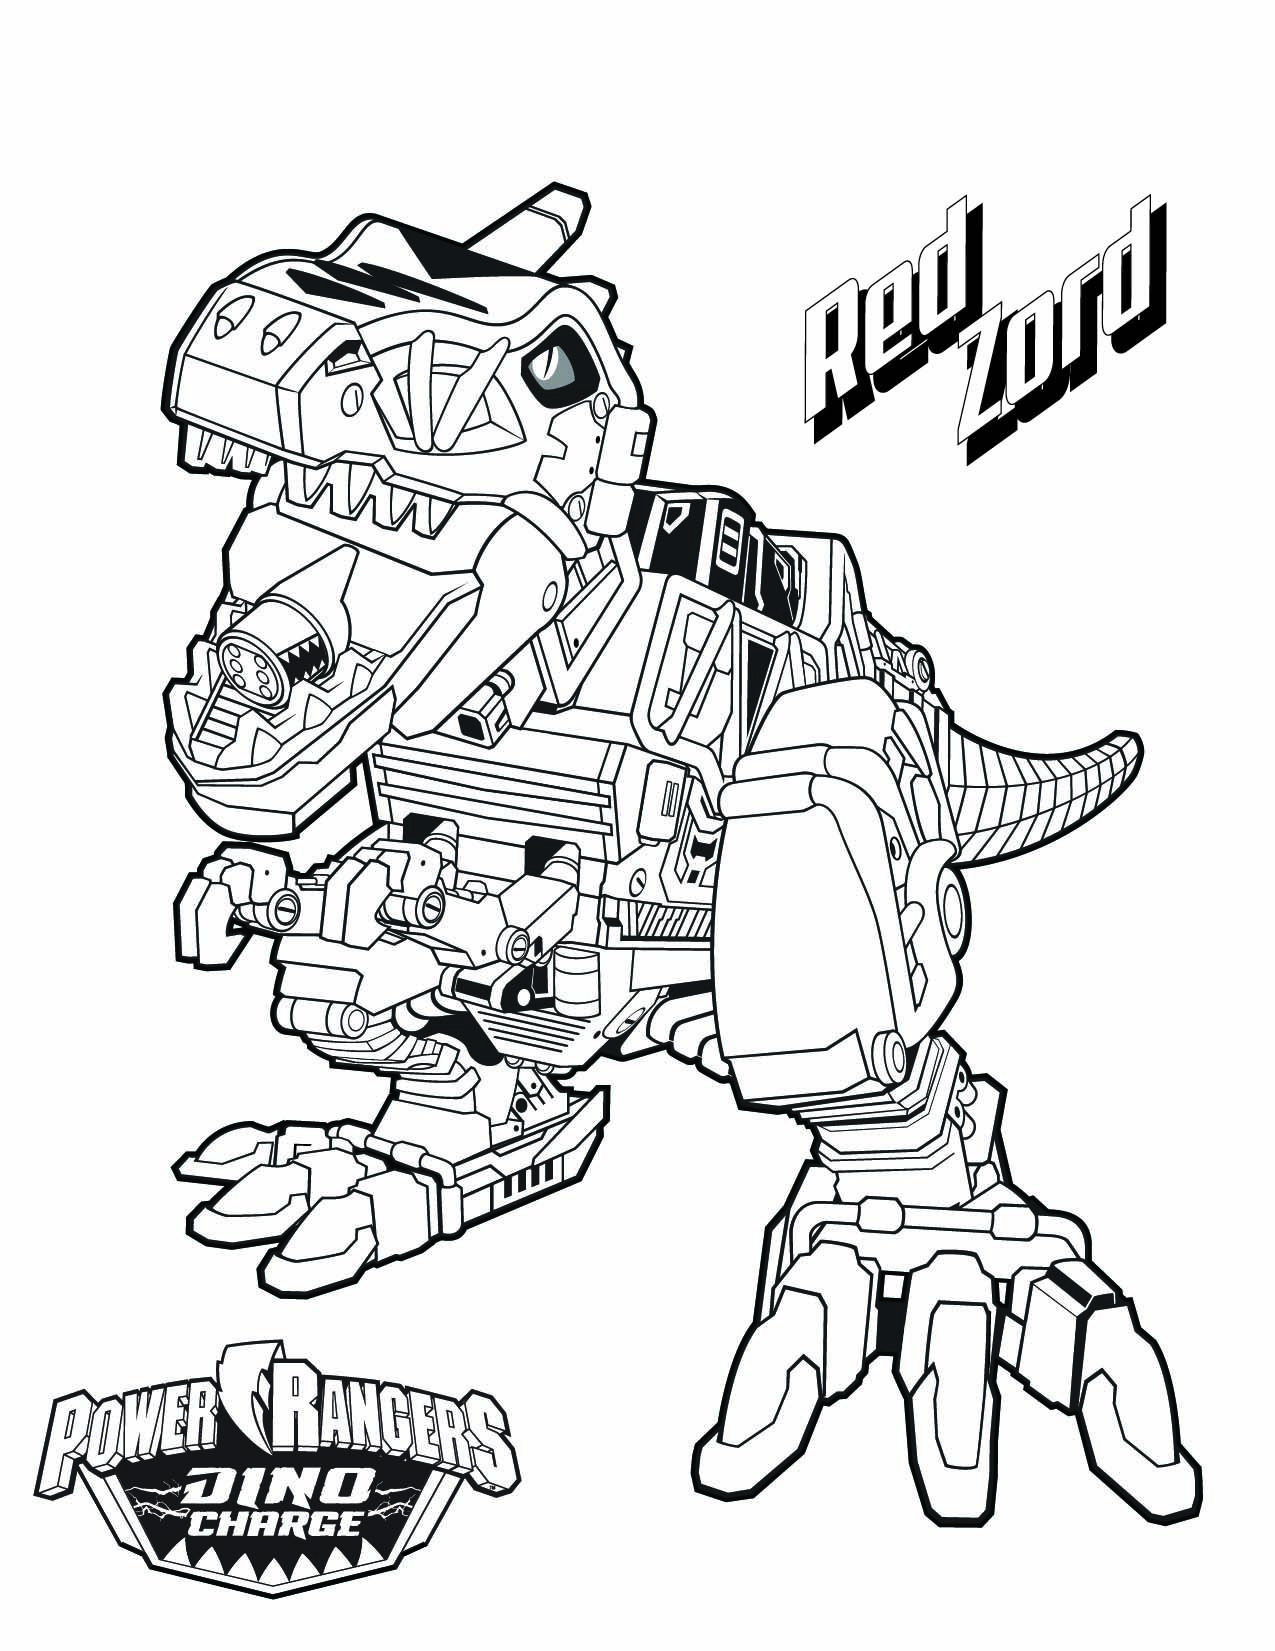 Download Them All: Http://www.powerrangers.com/download Type/coloring Pages/